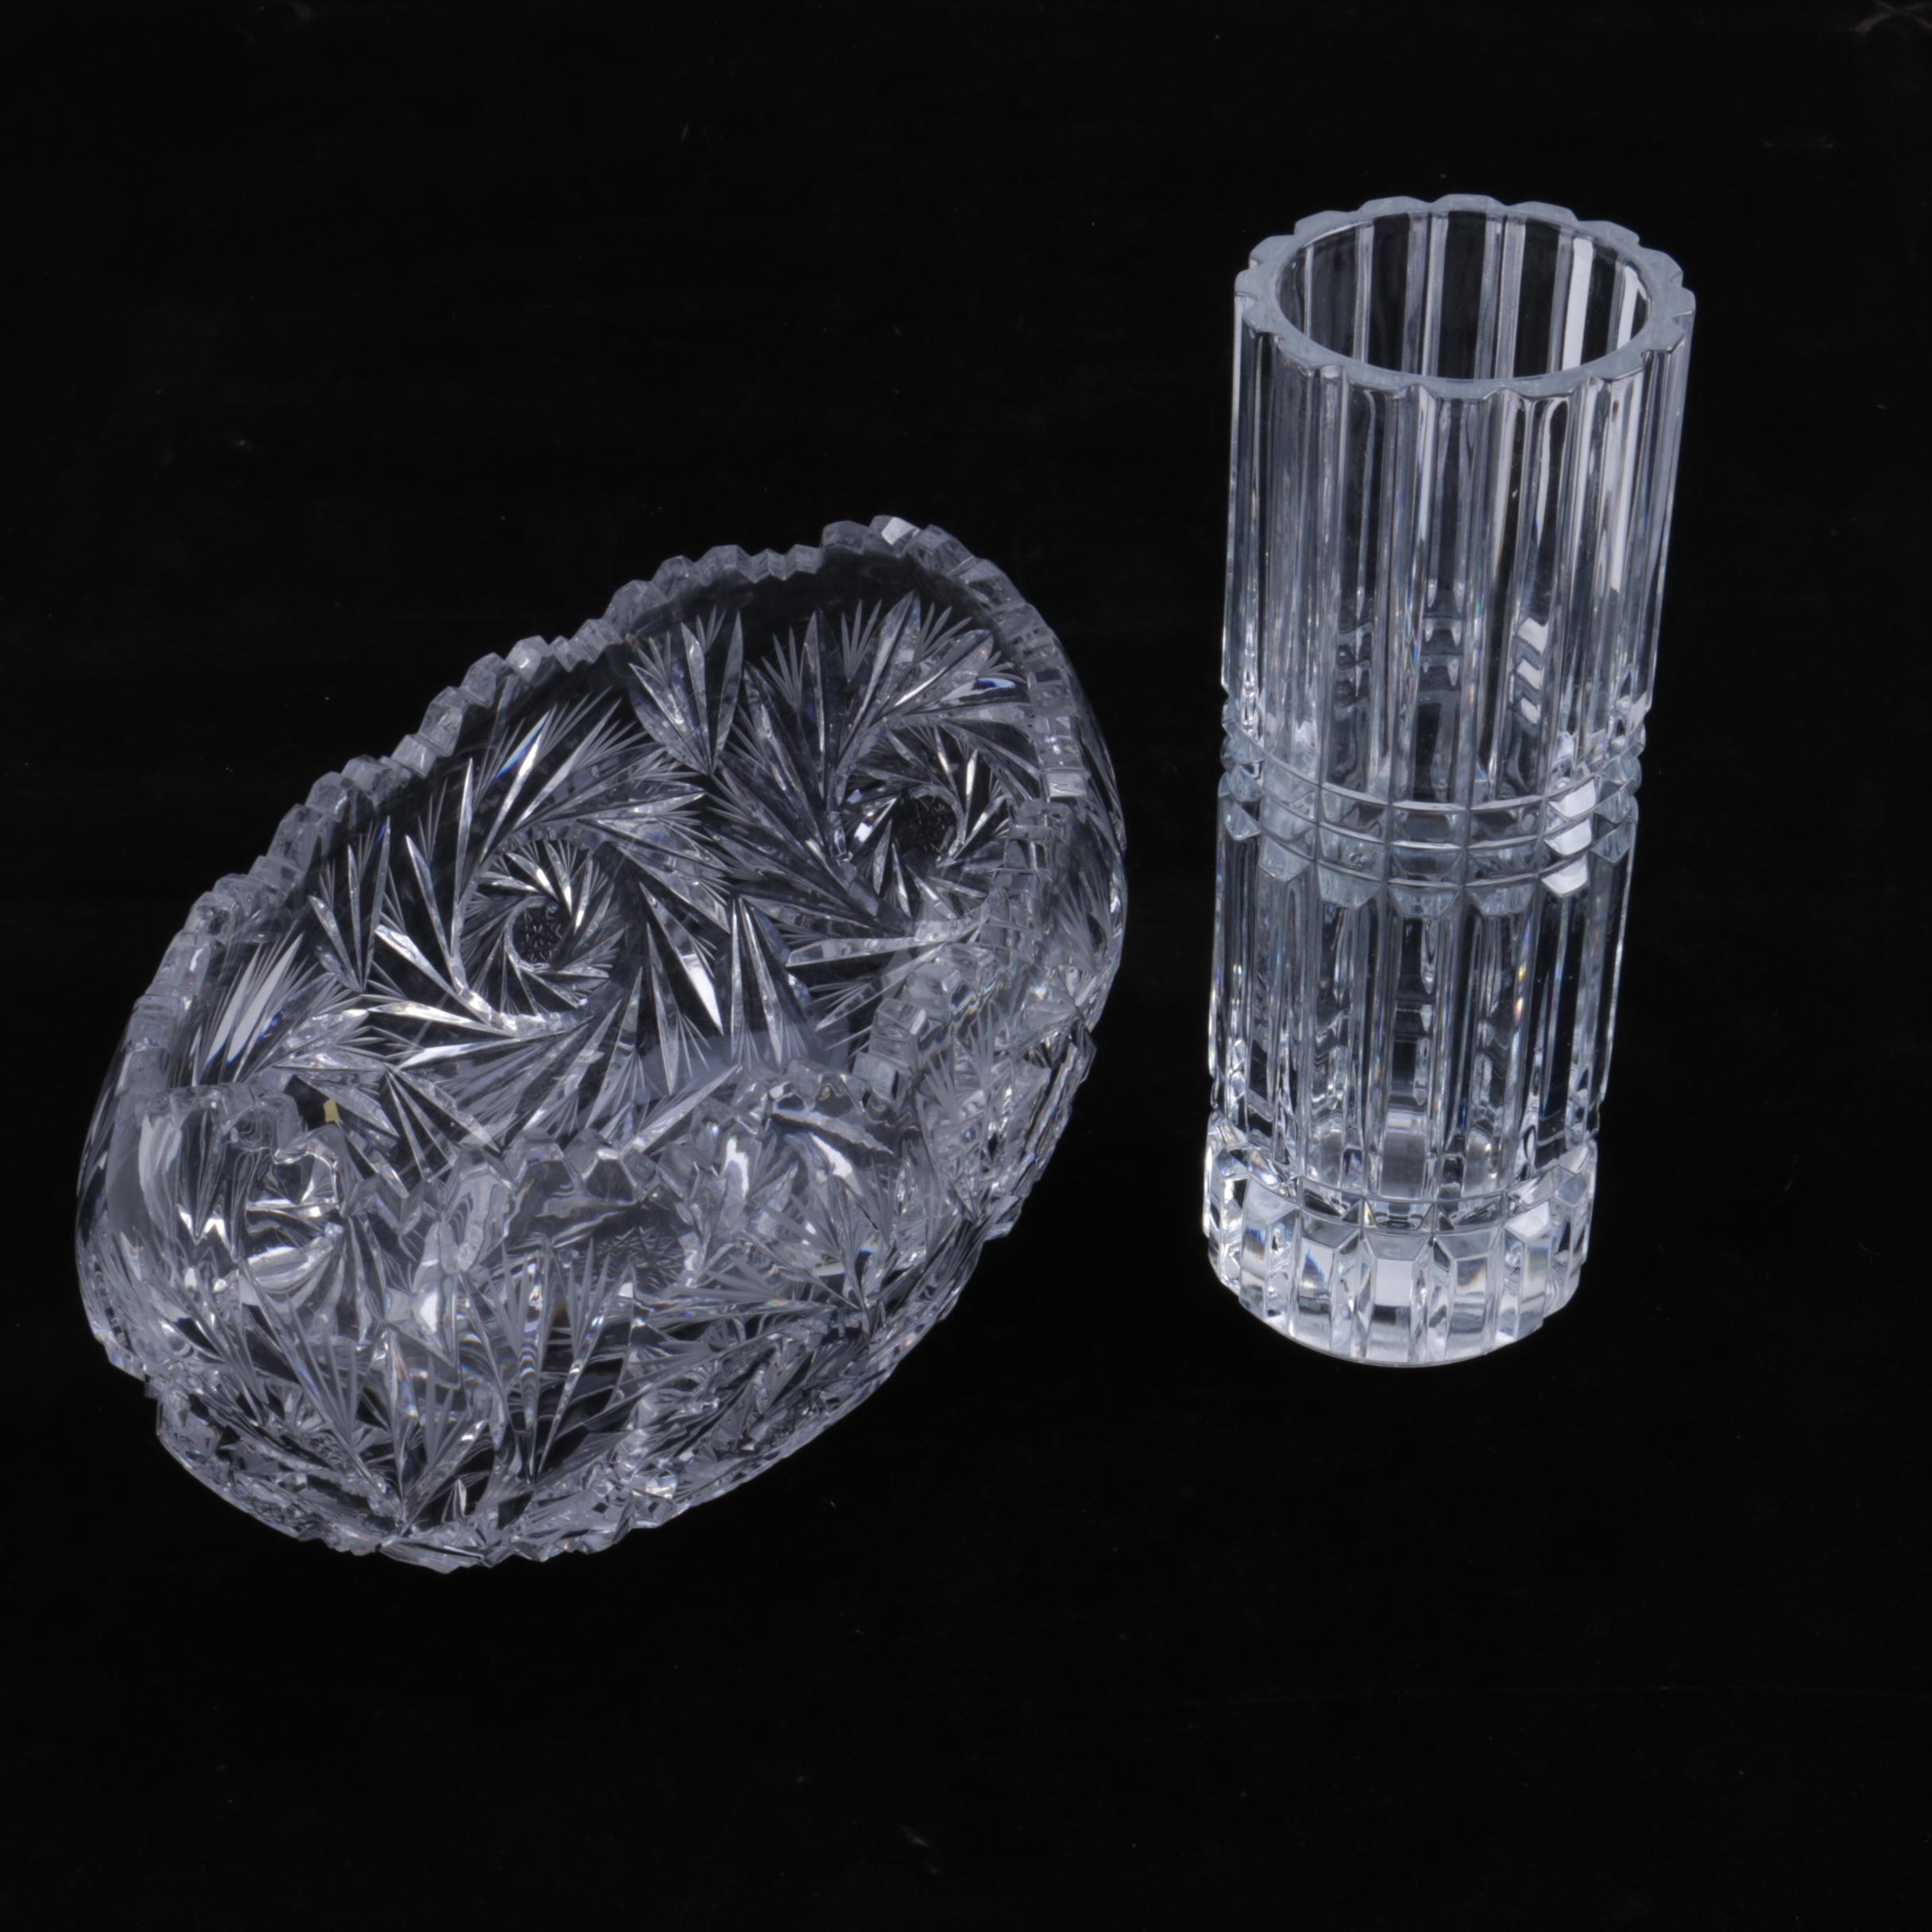 Vintage Wheel Cut Crystal Bowl and Pressed Glass Vase